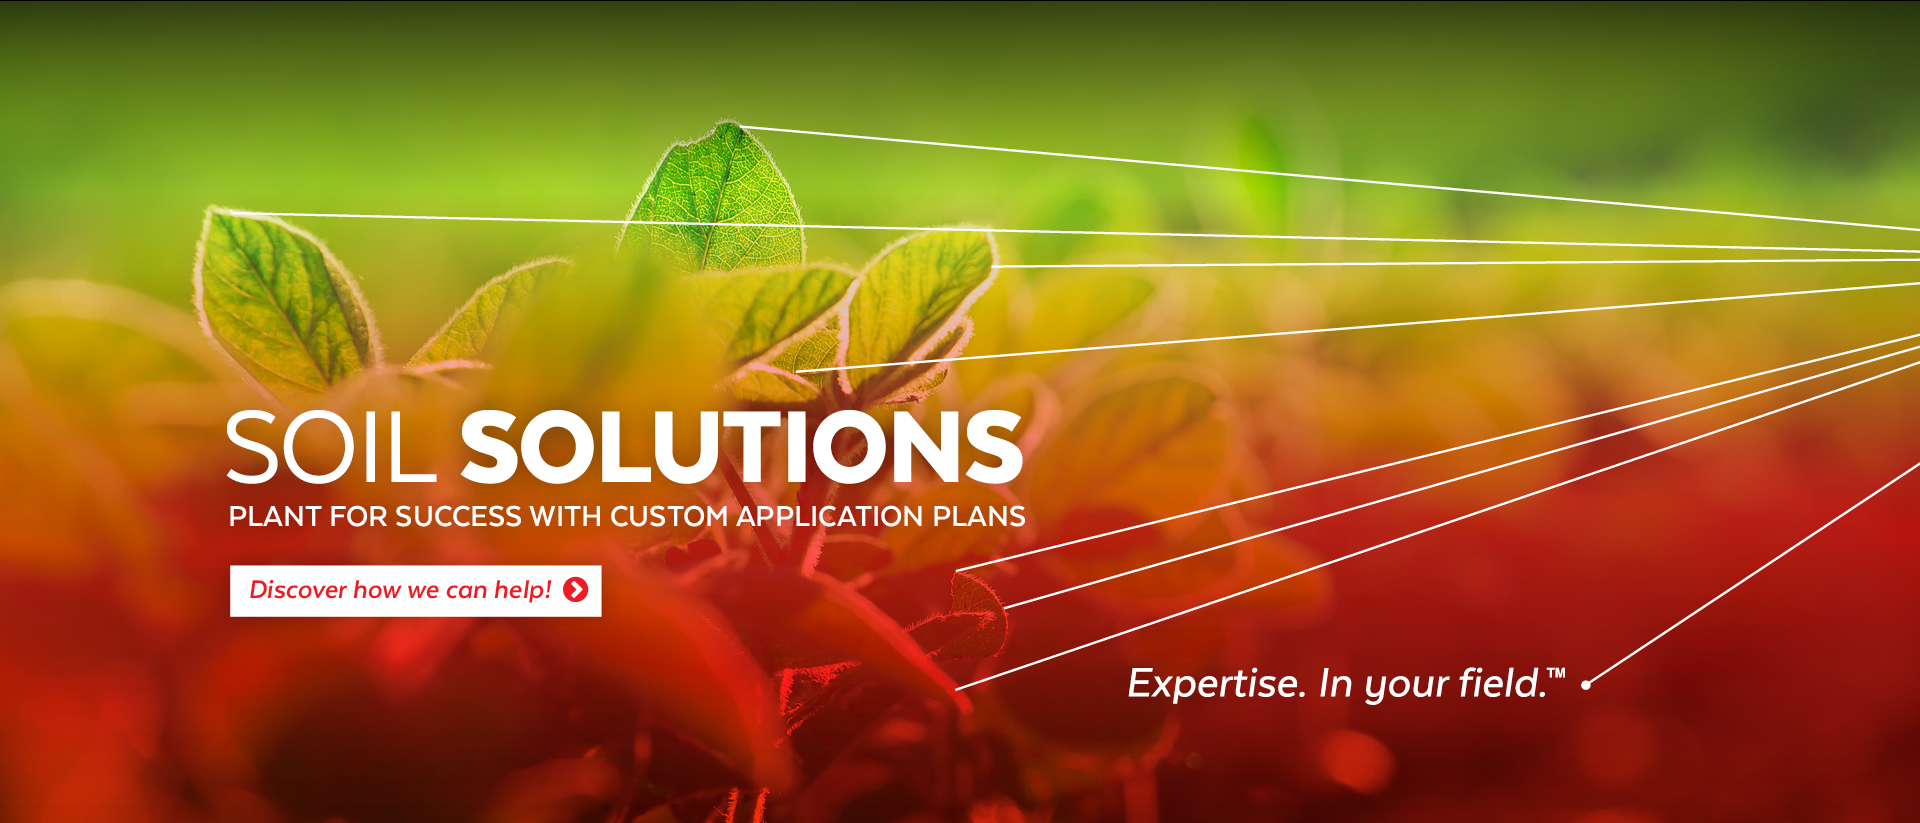 Soil Solutions | Plant For Success with Custom Application Plans